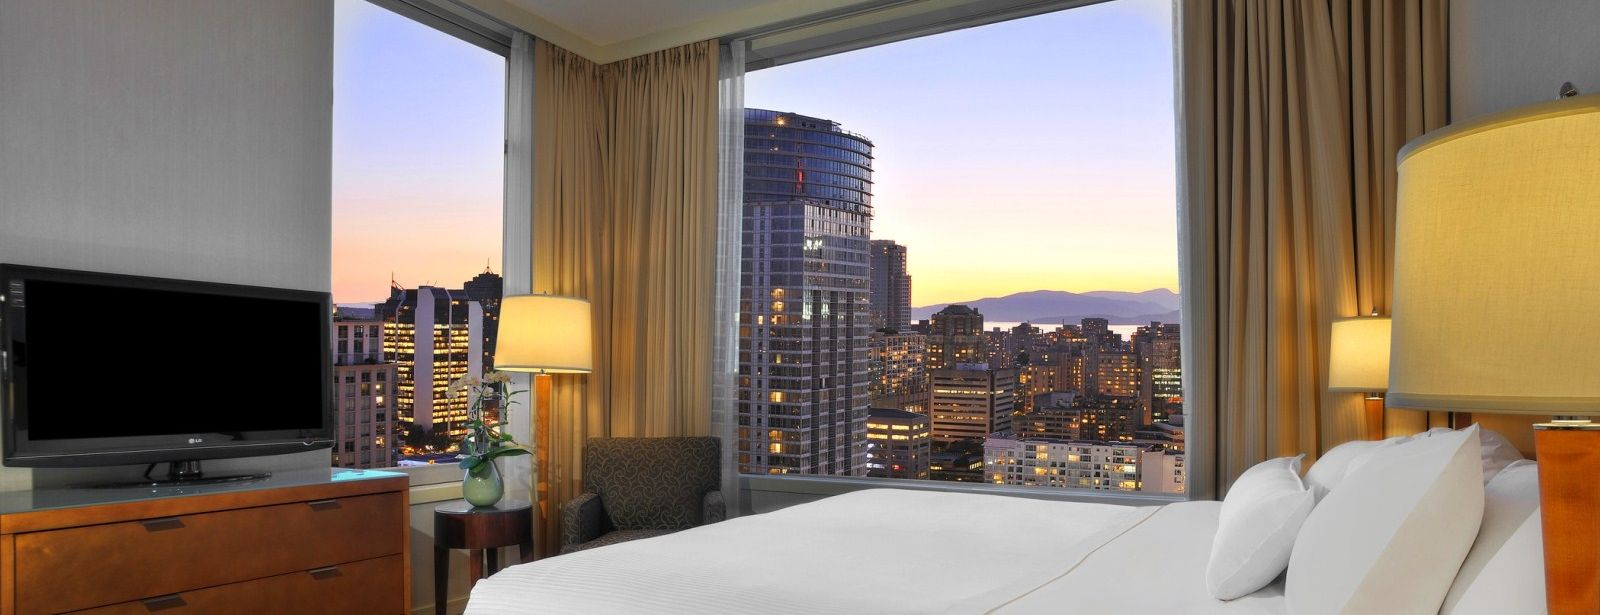 The Westin Grand, Vancouver Hotel - Westin Workout Deluxe One Bedroom Suite